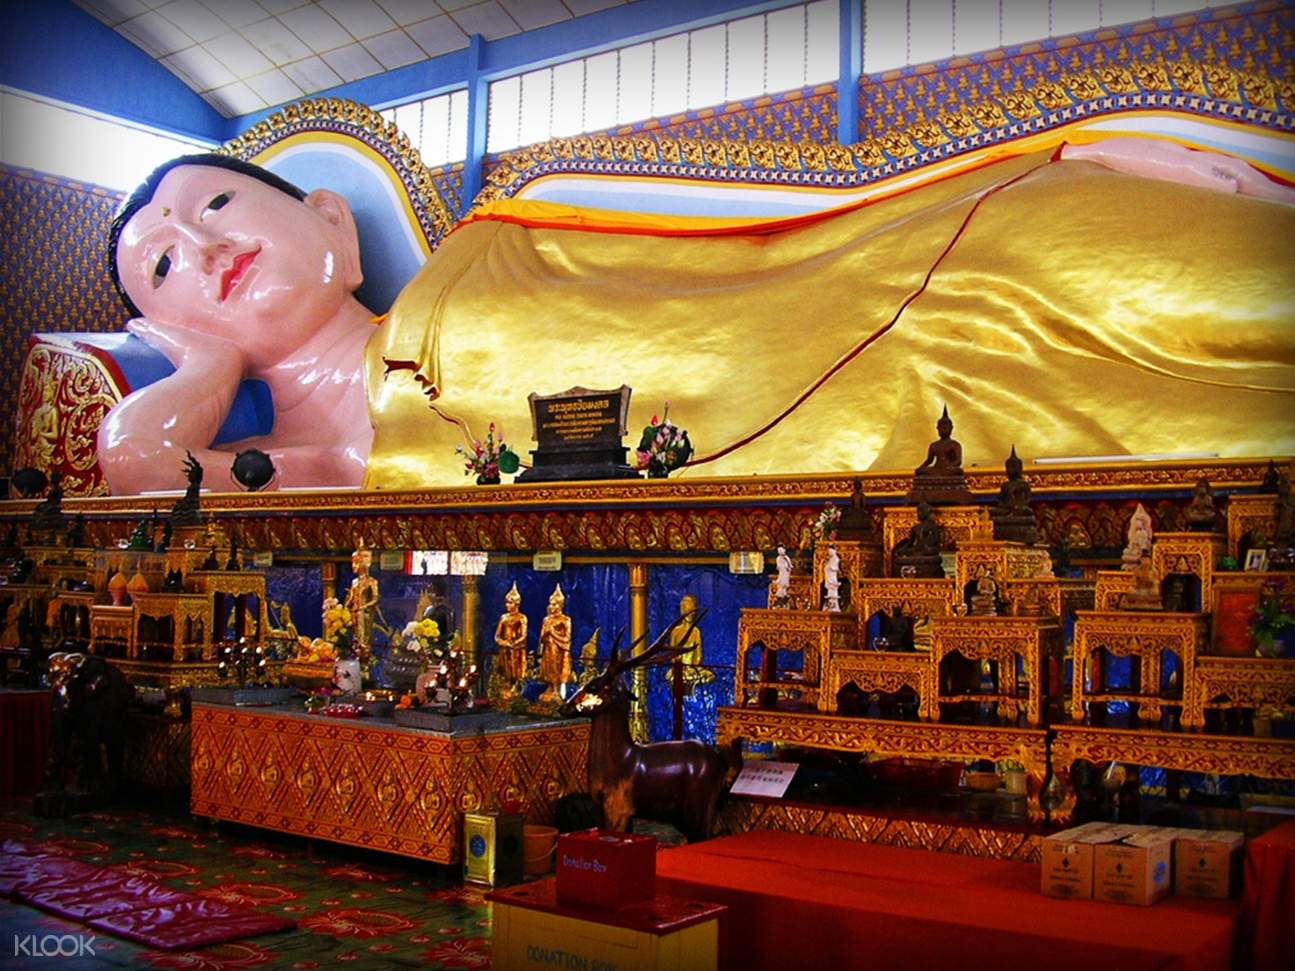 statue of buddha inside a temple